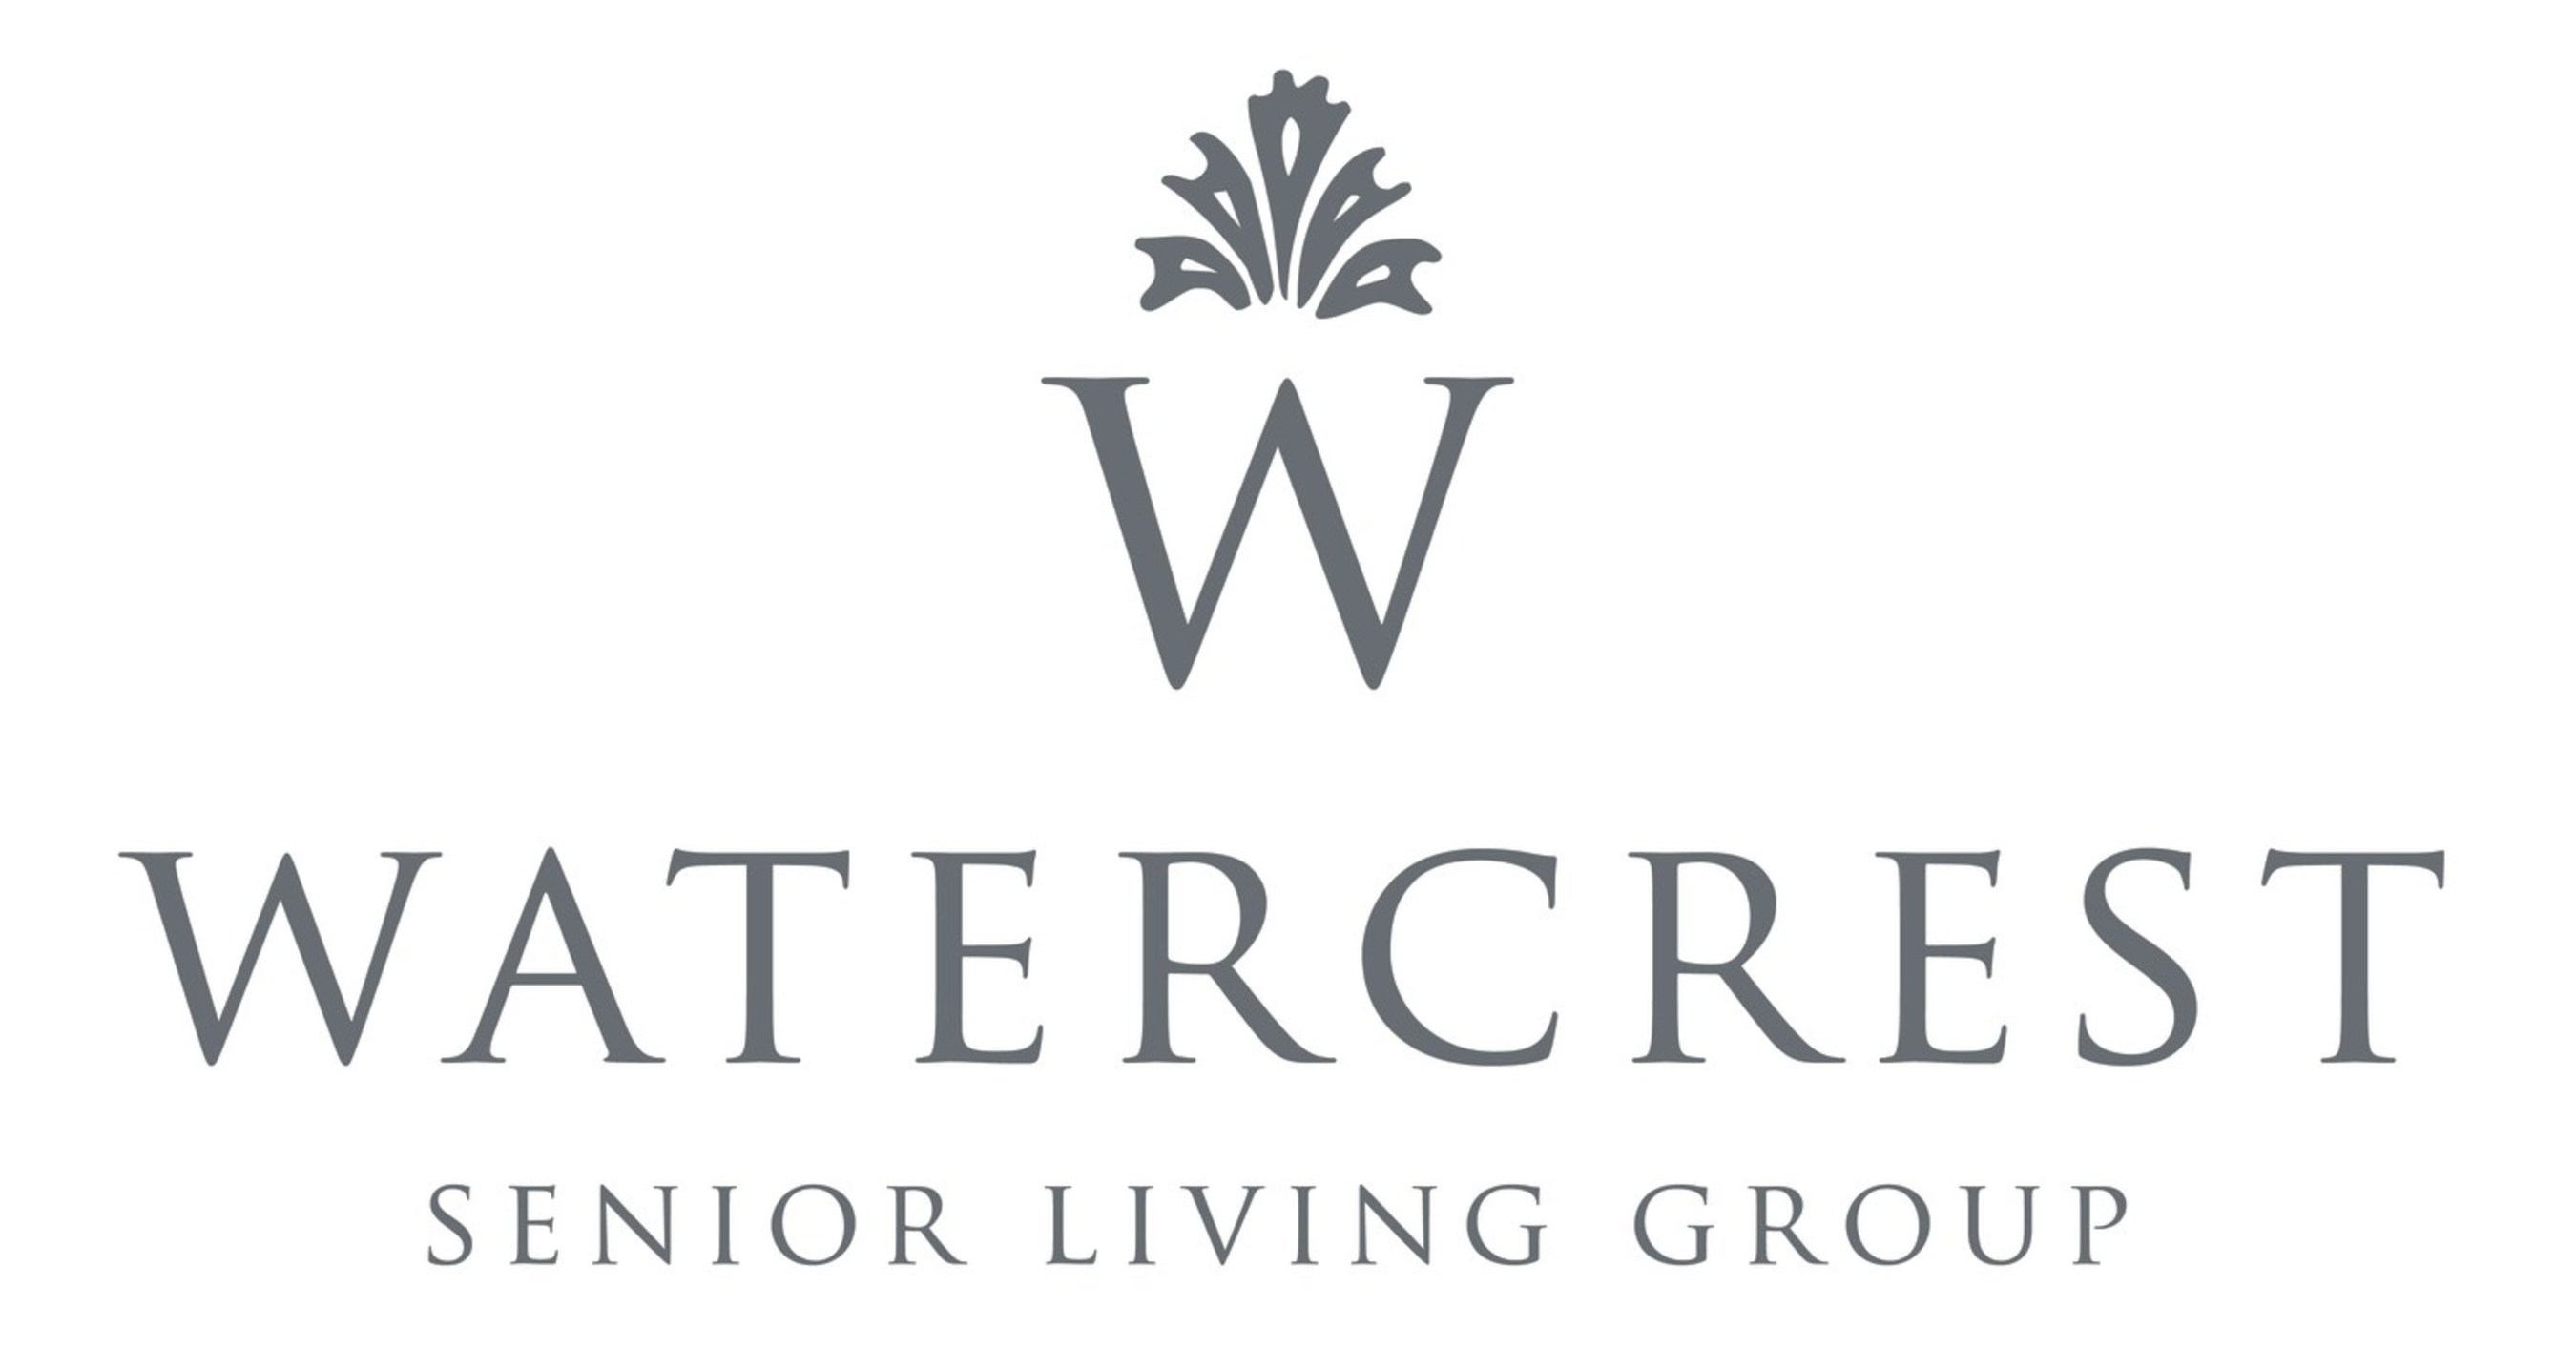 Watercrest Senior Living Group Welcomes Dawn Osterweil as